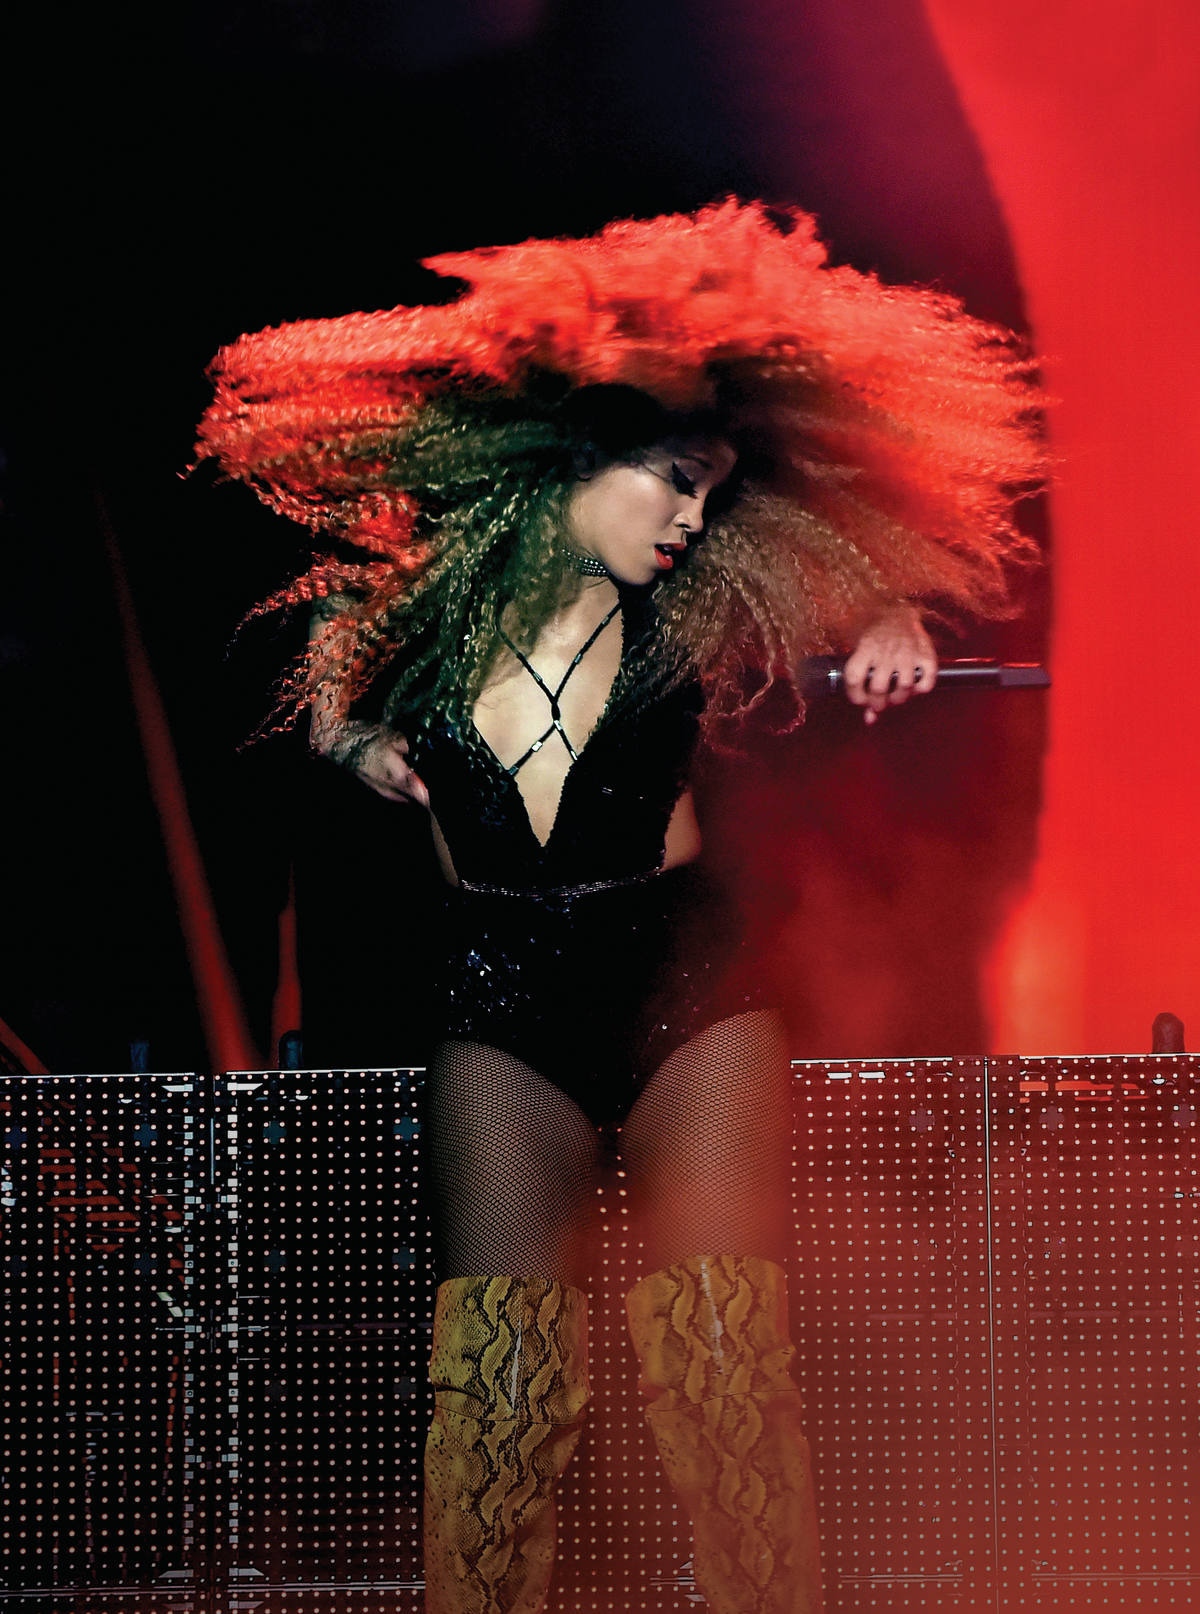 INDIO, CA - APRIL 23: Guest singer Jillian Hervey of Lion Babe performs onstage with Disclosure during day 2 of the 2016 Coachella Valley Music & Arts Festival Weekend 2 at the Empire Polo Club on April 23, 2016 in Indio, California. Kevin Winter/Getty Images for Coachella/AFP